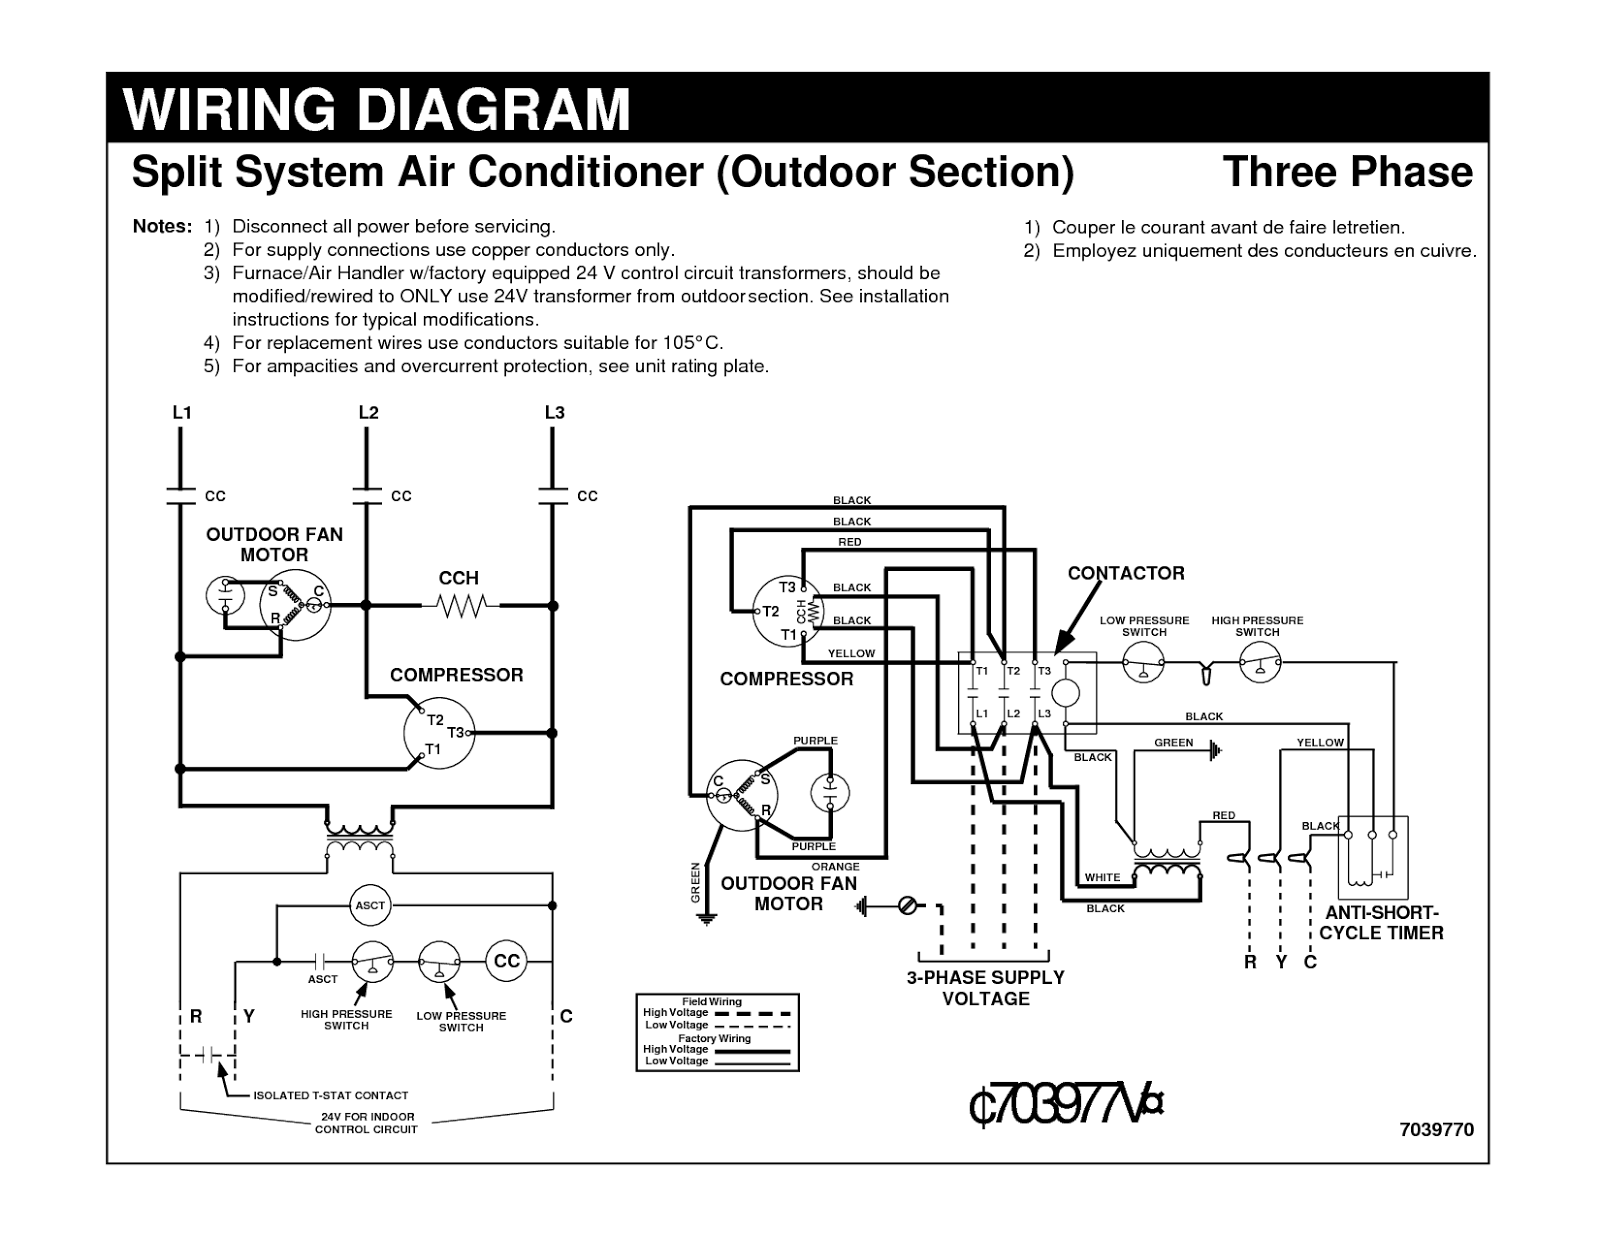 wiring+diagram+in+the+user+manual electrical wiring diagrams for air conditioning systems part one electrical wiring diagrams at gsmx.co